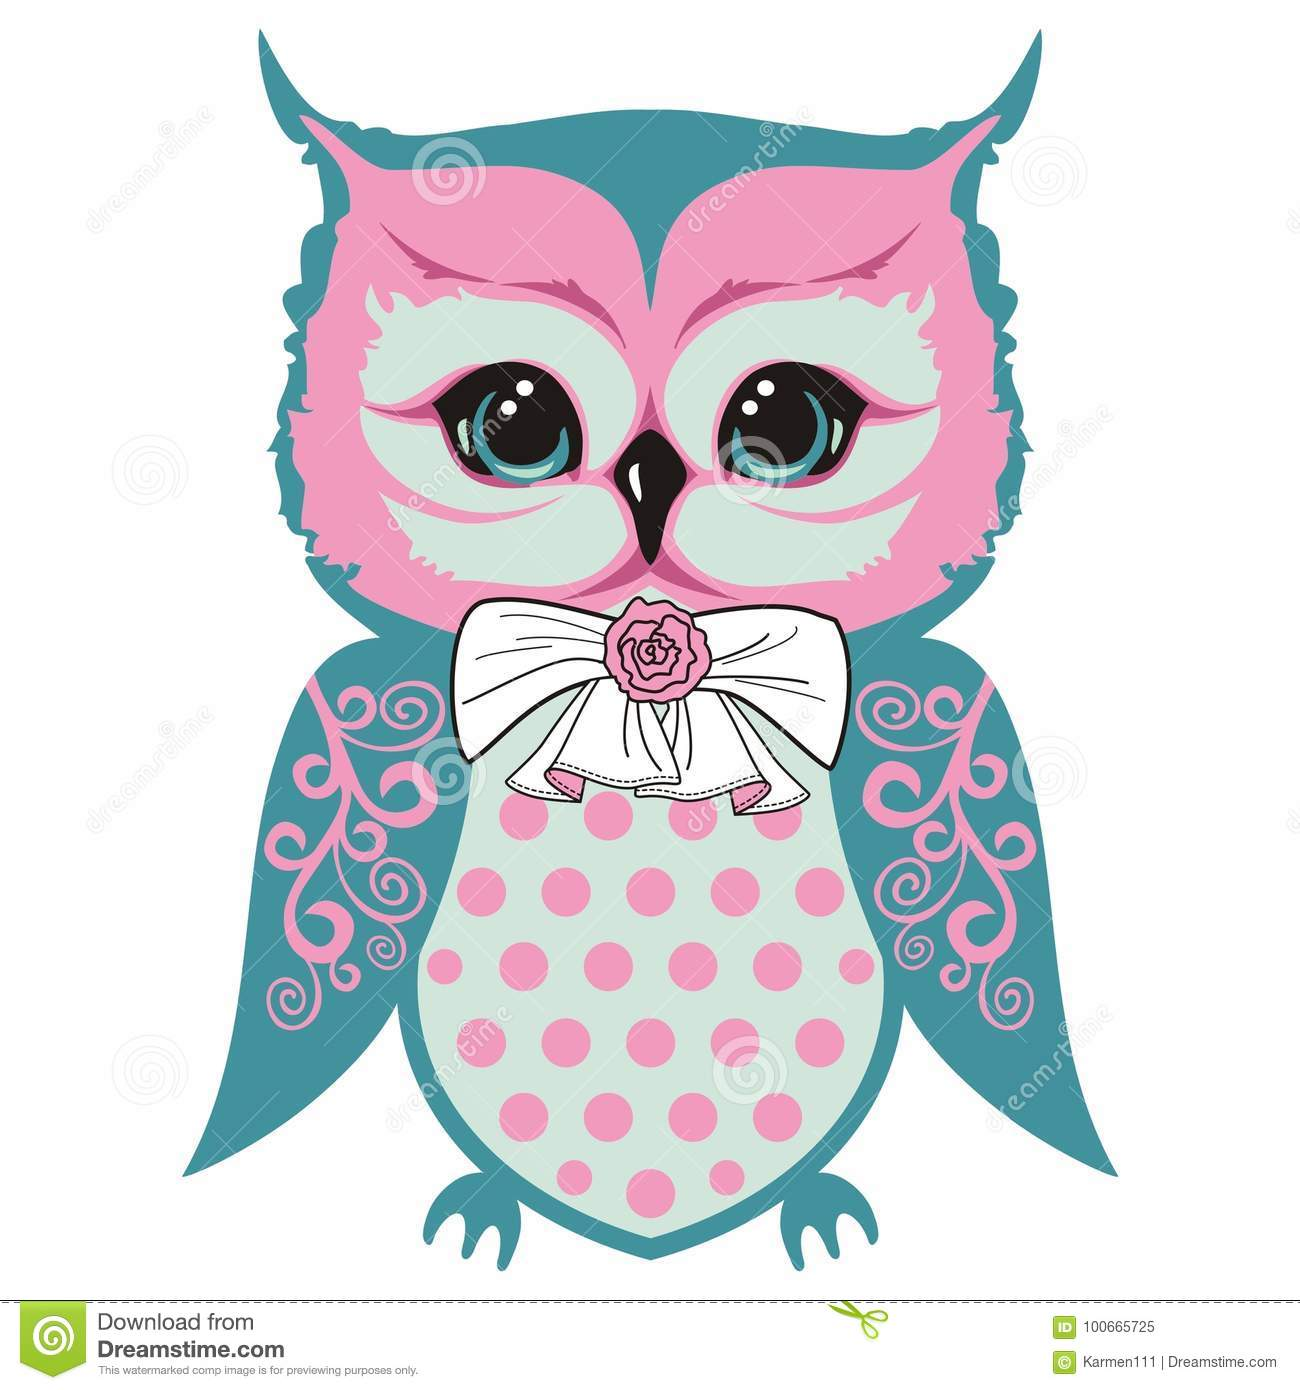 Owls cub is a small beautiful bird with a bow and a rose